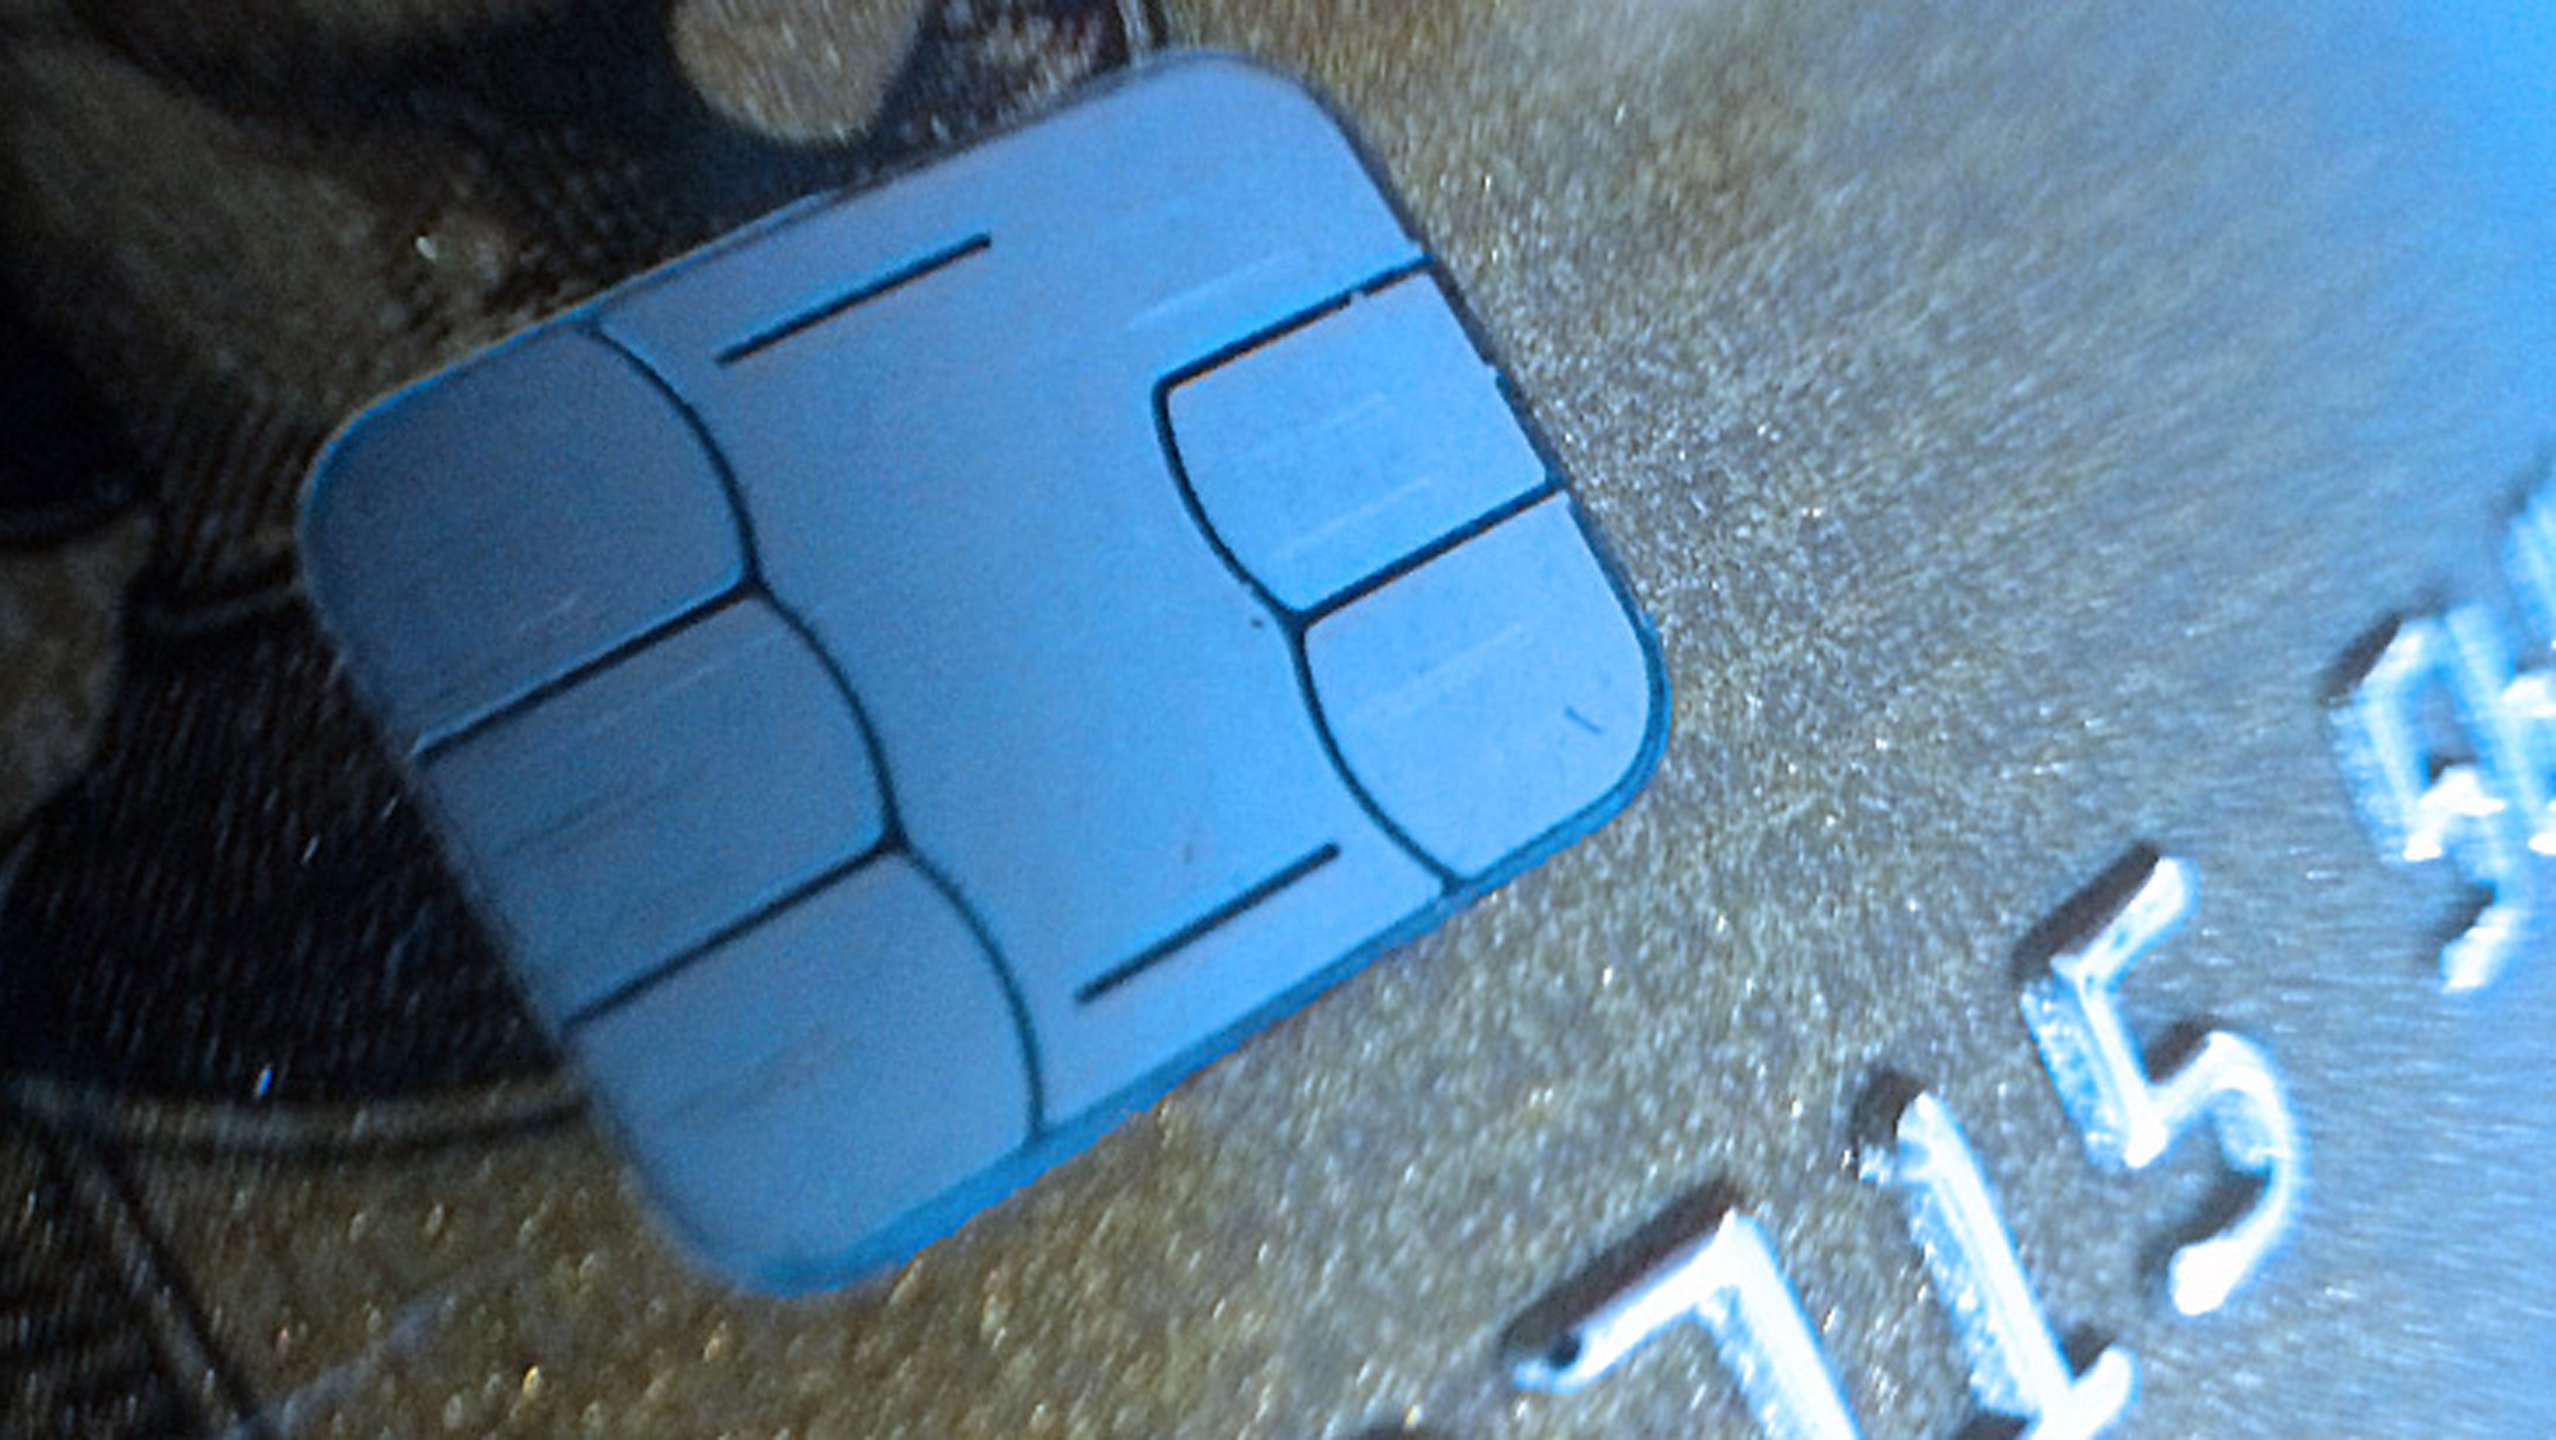 Close-up view of chase EMV chip credit card